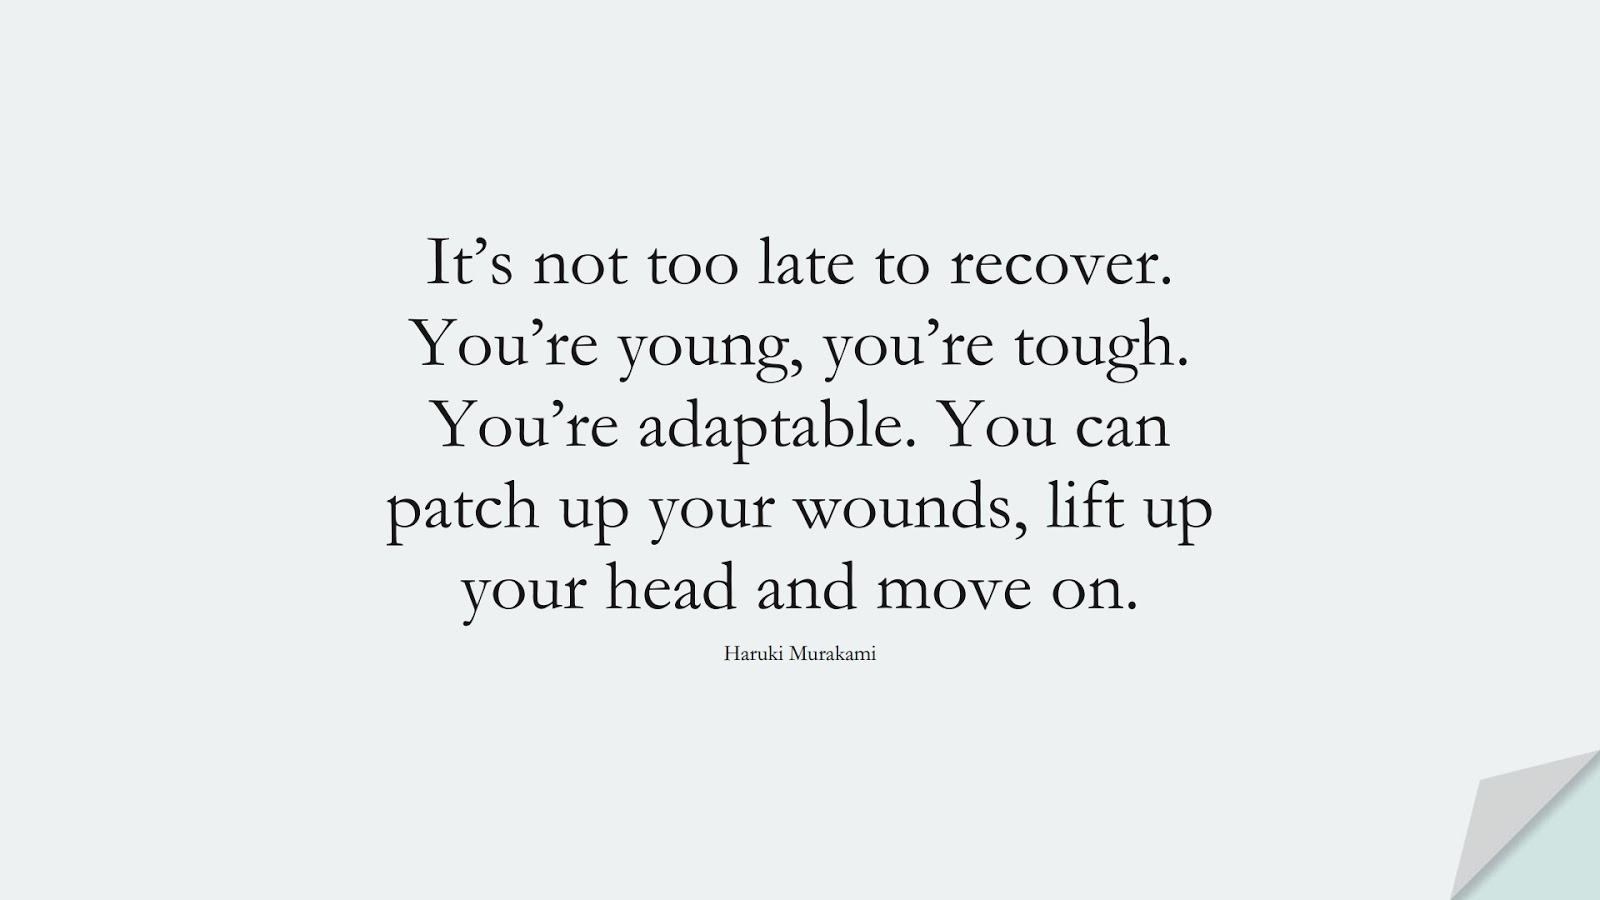 It's not too late to recover. You're young, you're tough. You're adaptable. You can patch up your wounds, lift up your head and move on. (Haruki Murakami);  #DepressionQuotes